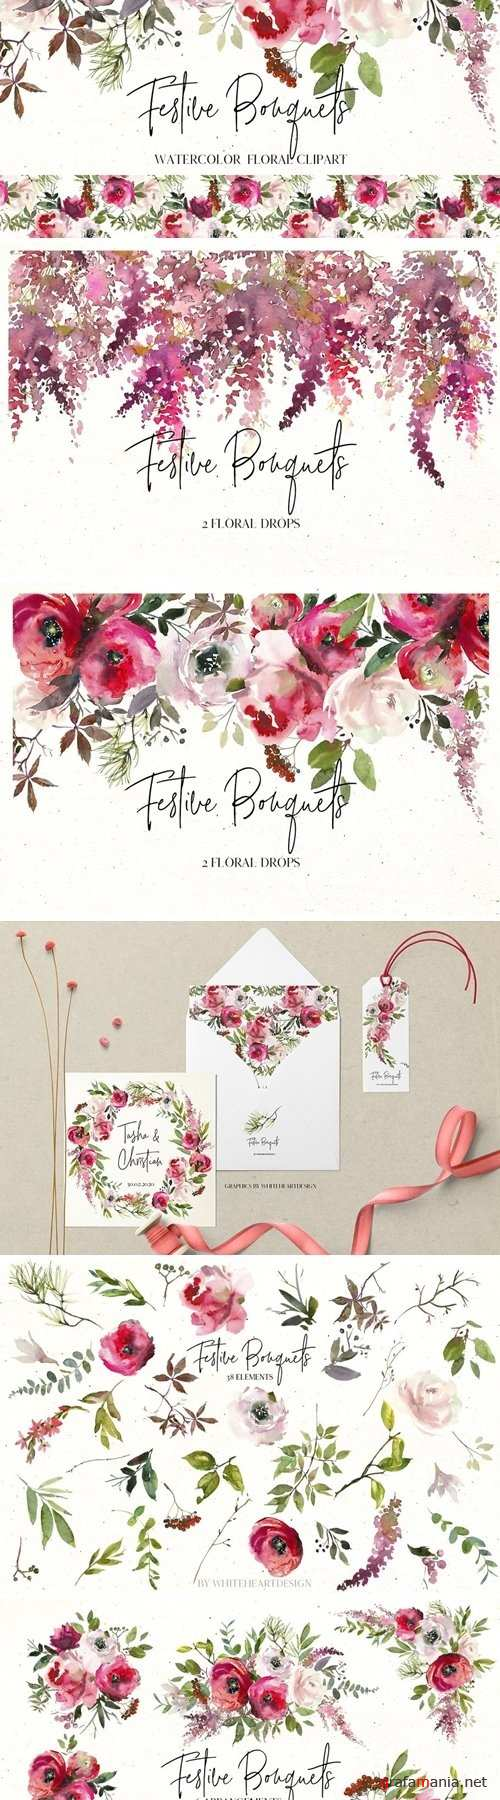 Festive Bouquets Watercolor Flowers - 3004799